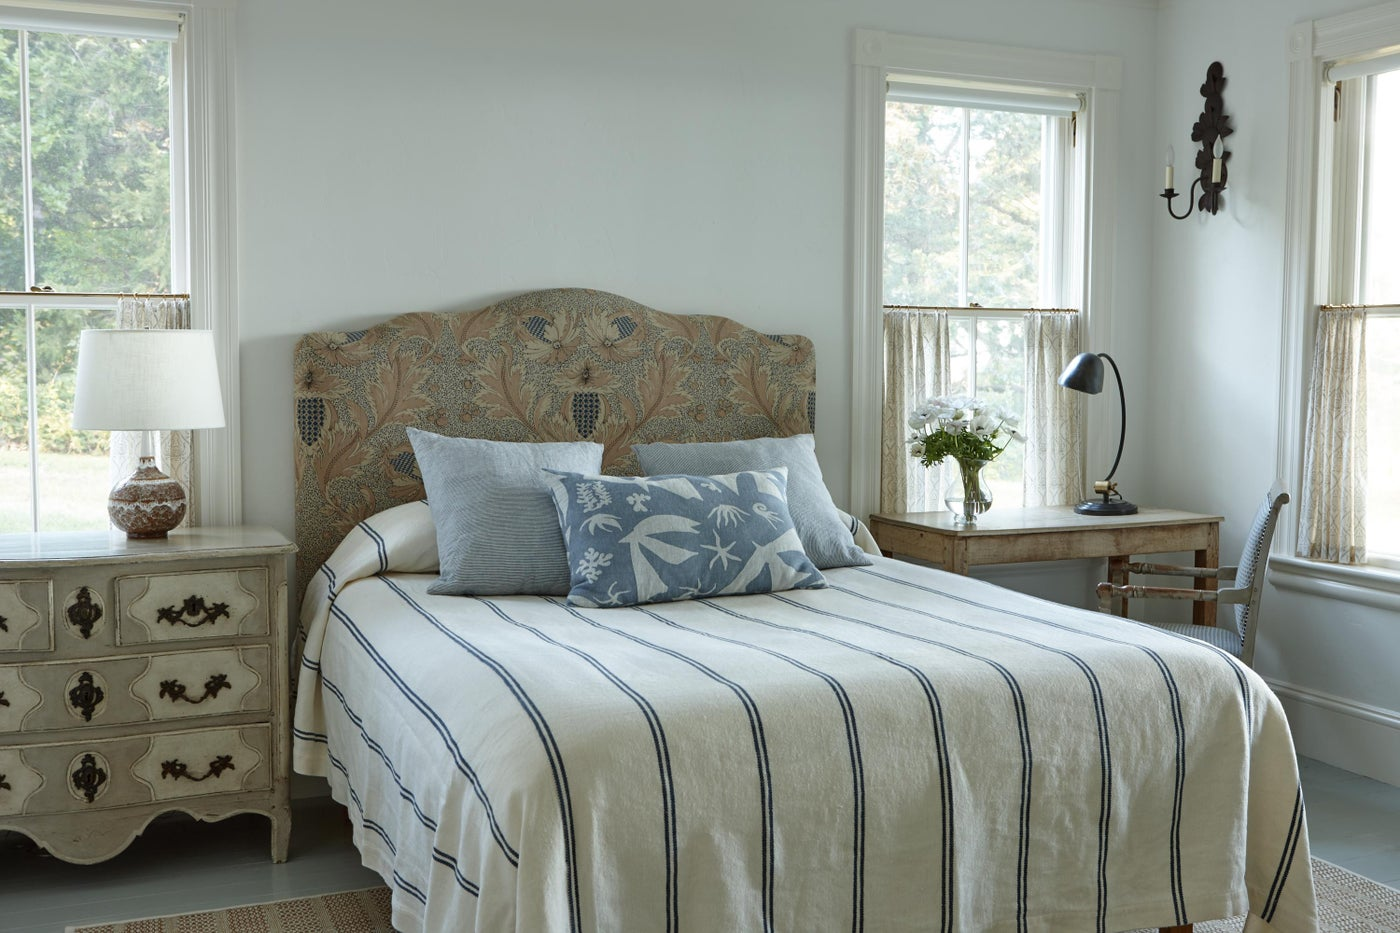 Guest bedroom in beach house.